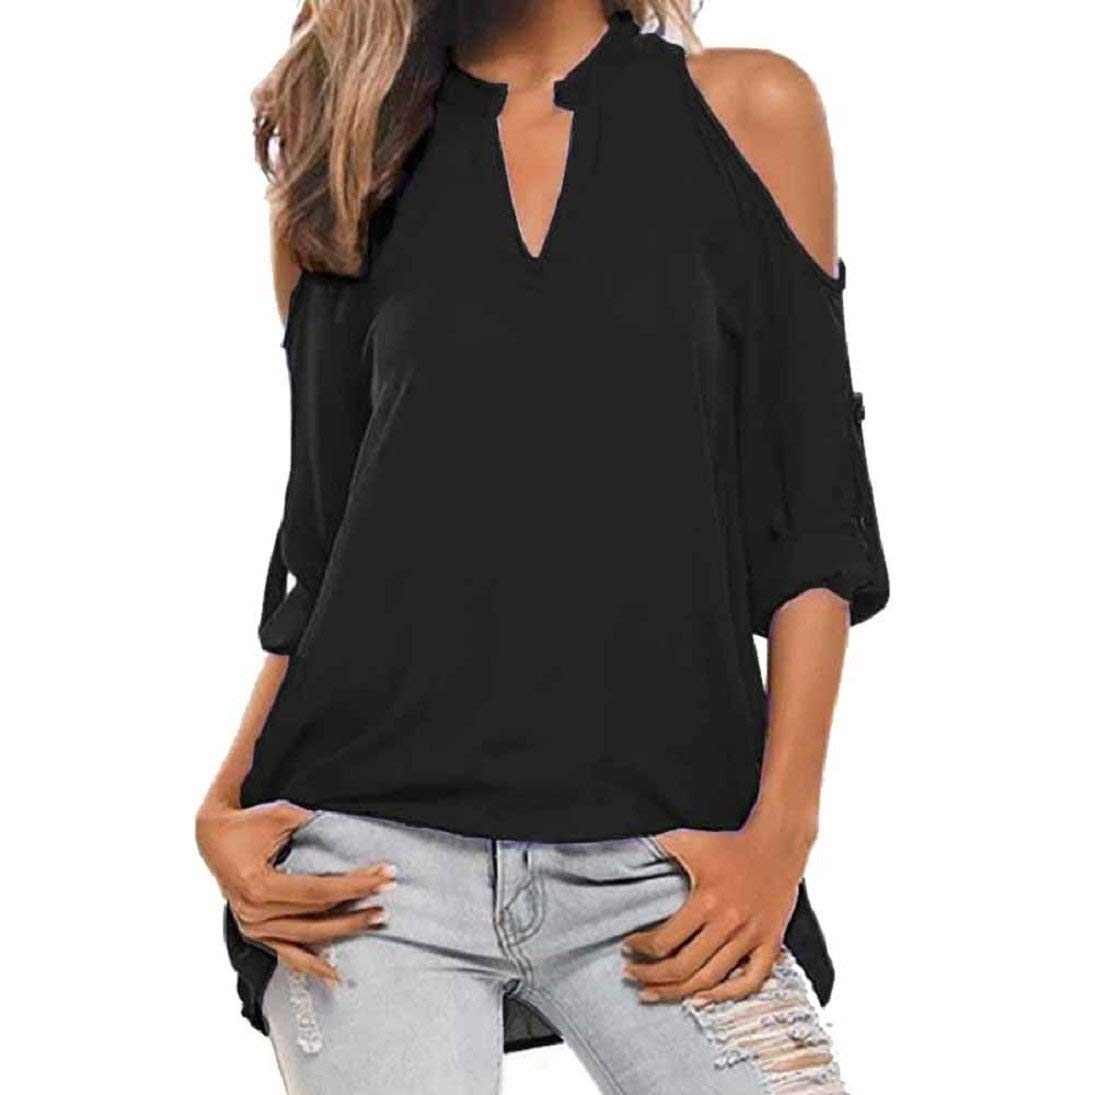 Women's Shirt Pullover Cold Shoulder Casual Long Sleeve Strapless V-neck Tops Blouse Women's Shirt Pullover Cold Shoulder Casual Long Sleeve Strapless V-neck Tops Blouse (S, Black)